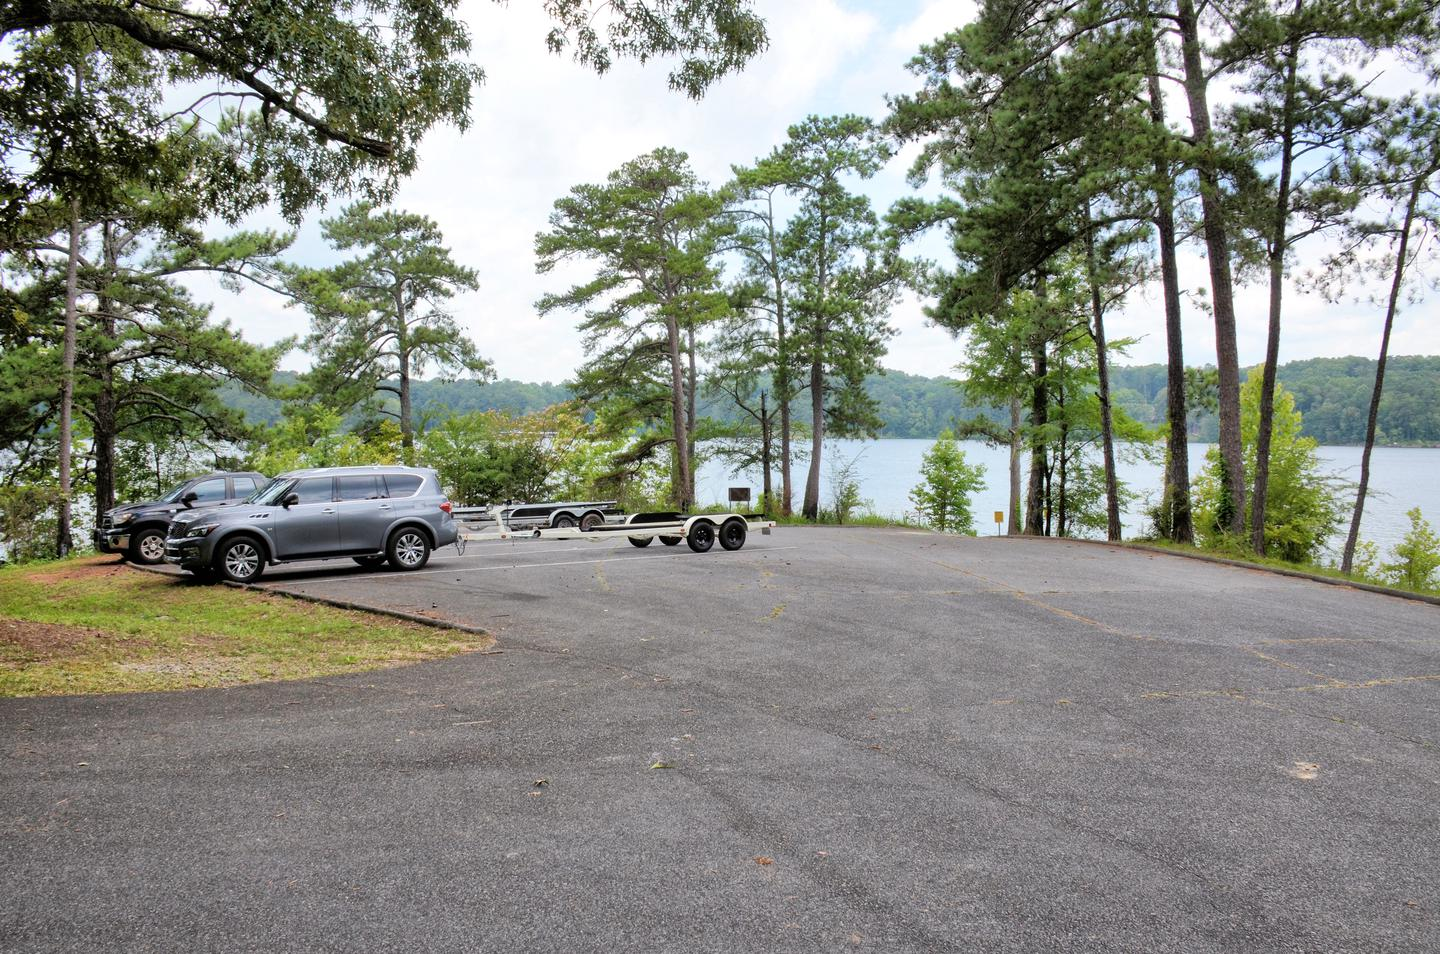 Old Hwy 41 #3 Boat Ramp Parking